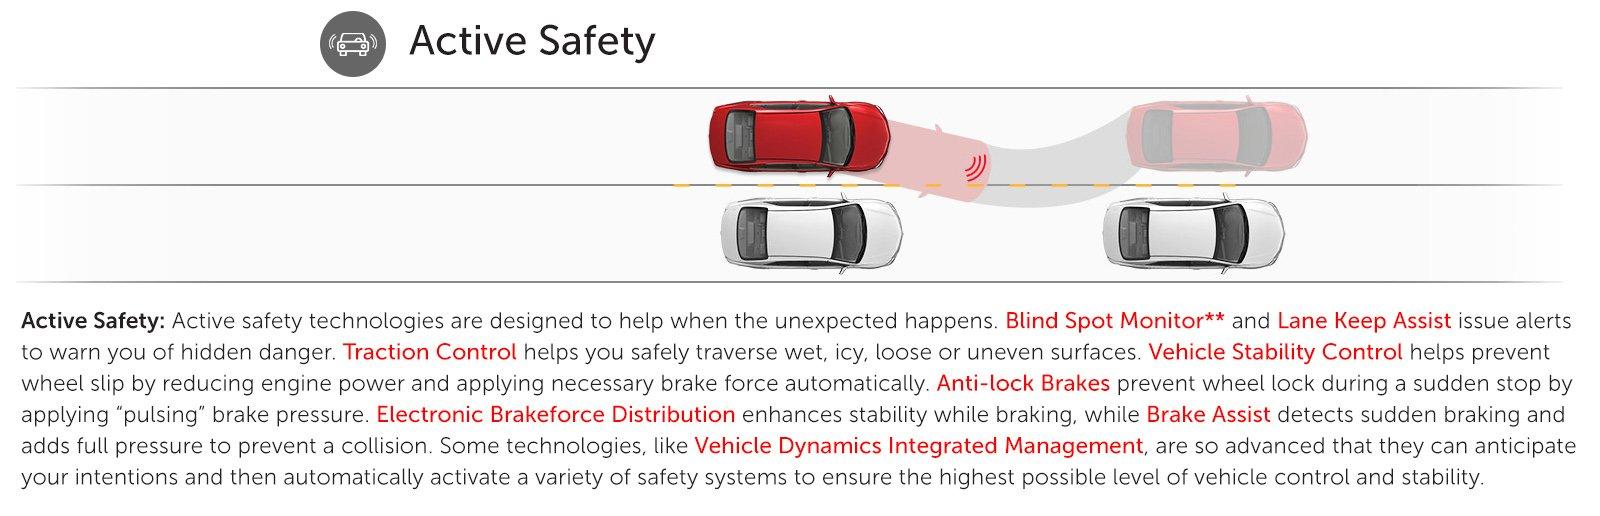 Toyota Safety Sense - Active Safety